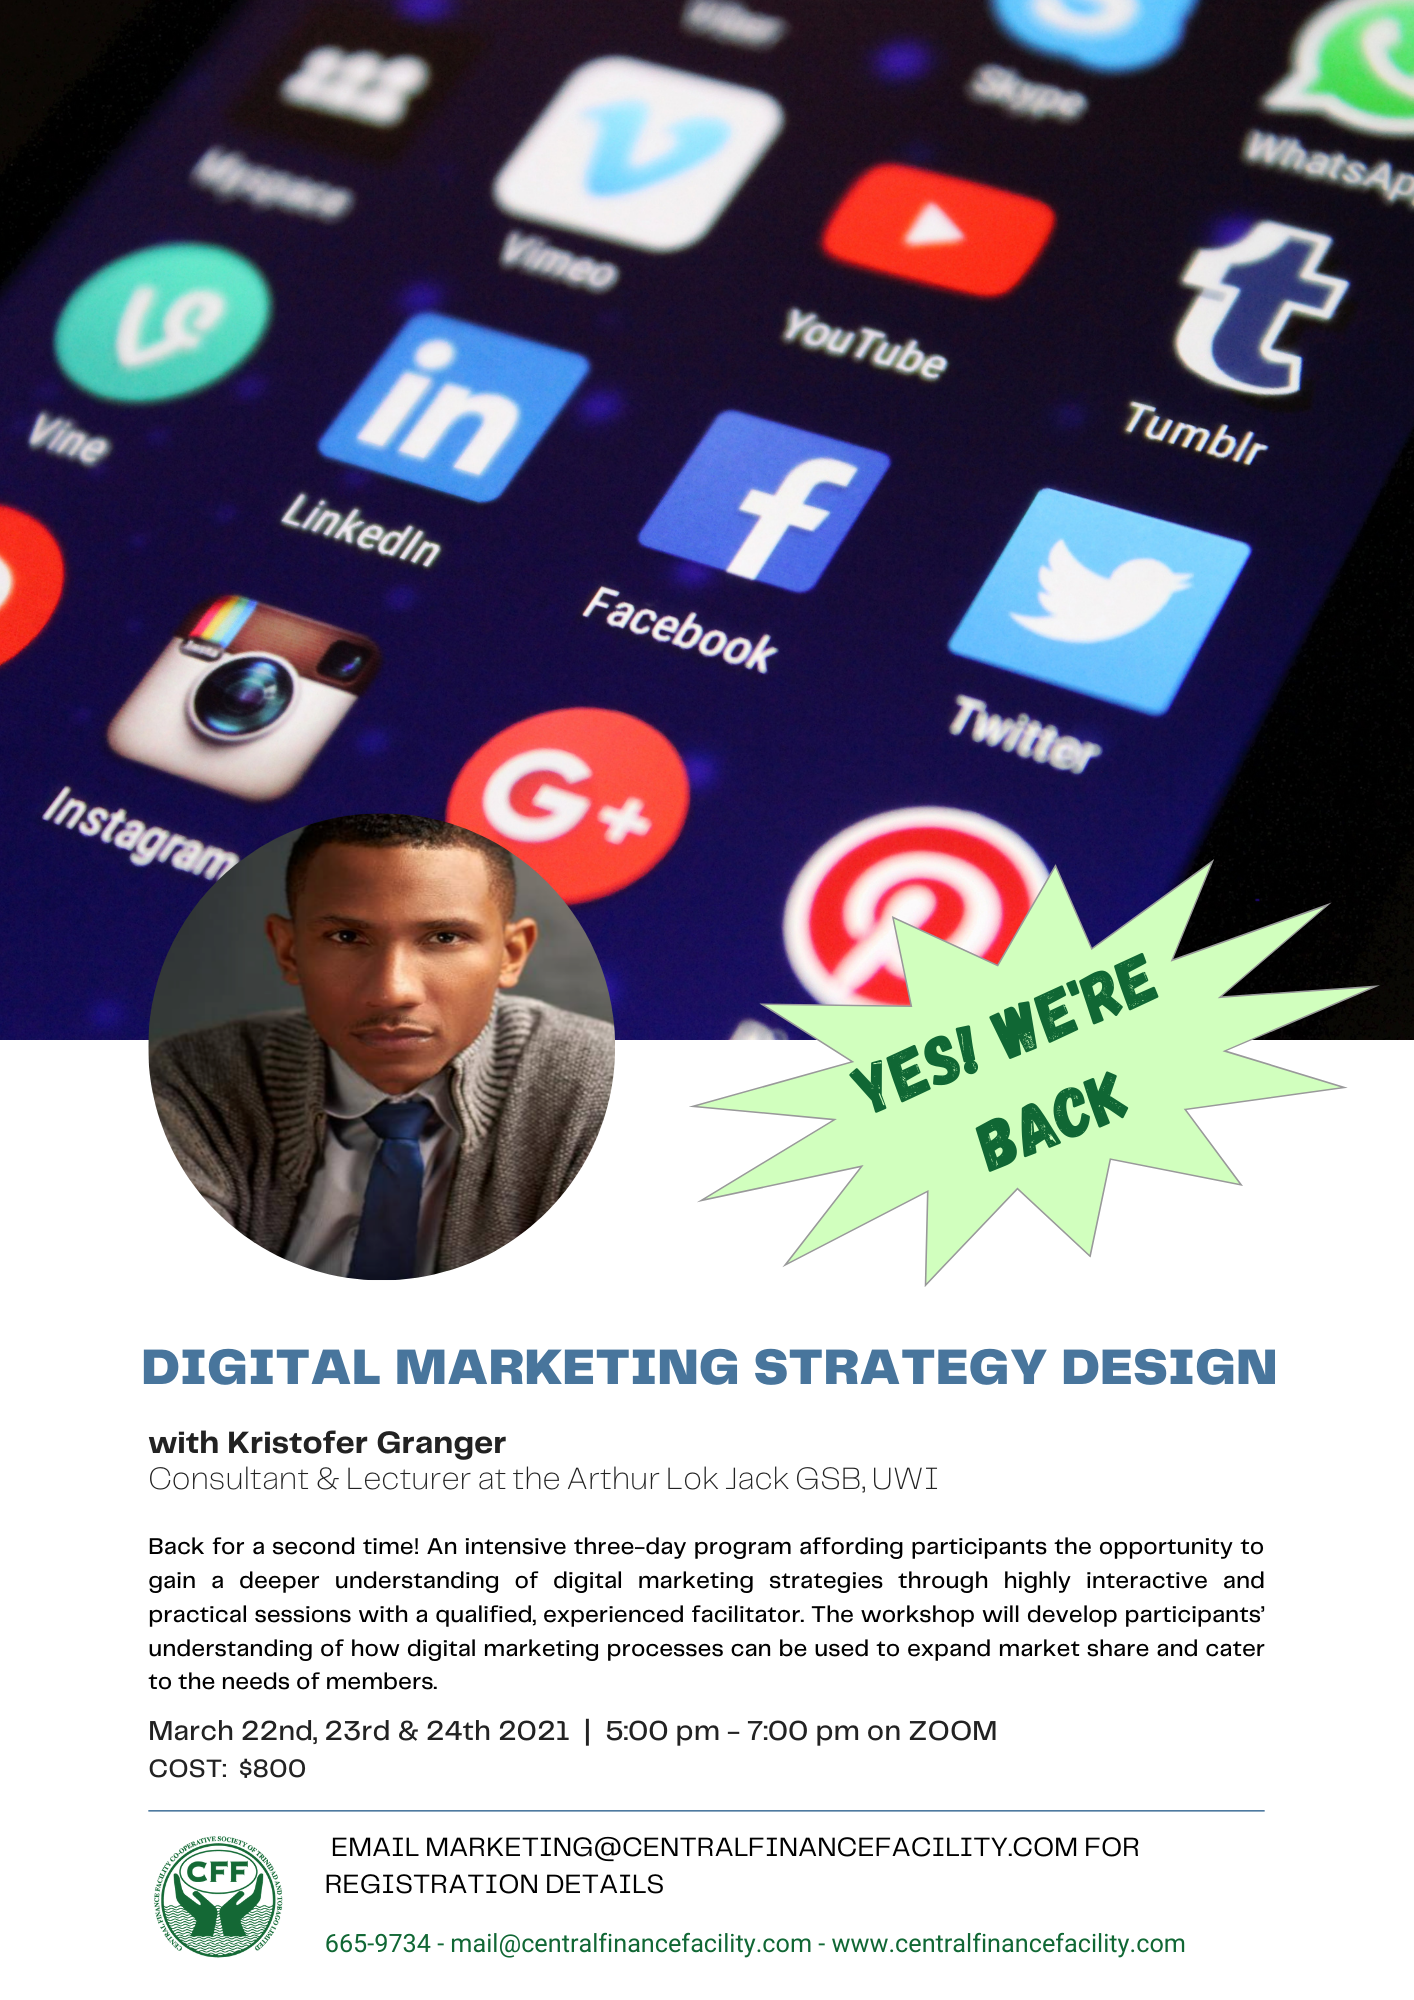 Digital Marketing Strategy Design